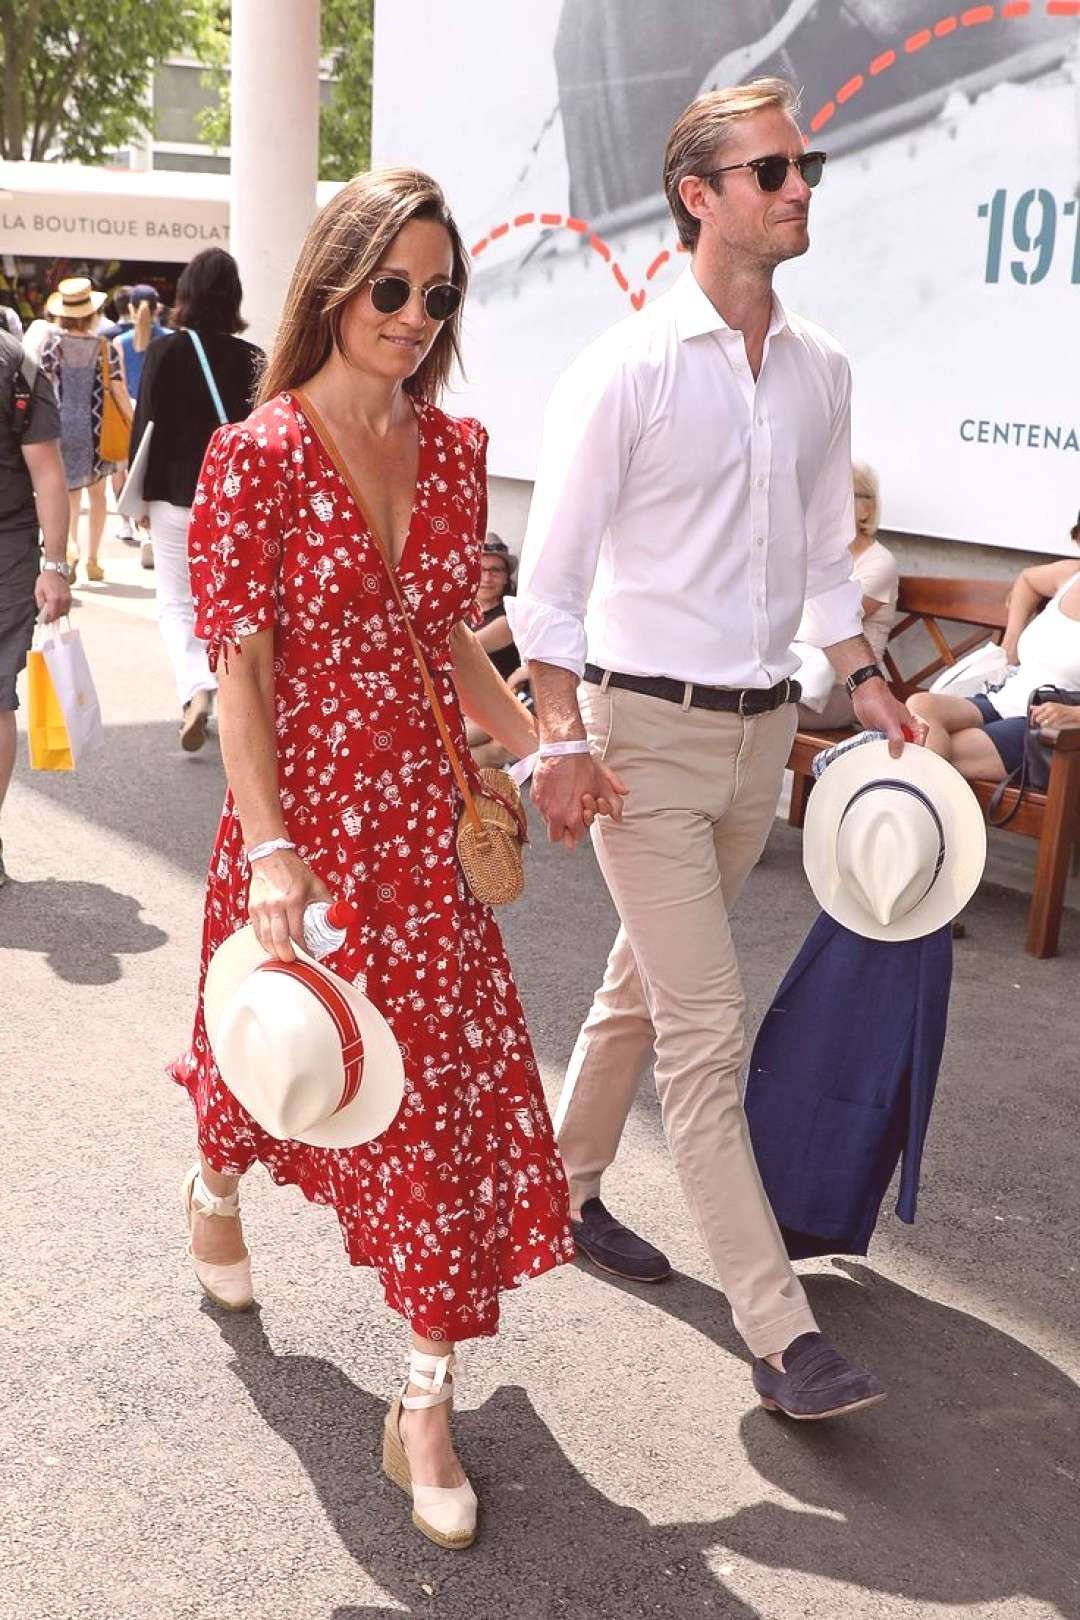 Pippa Middleton in a red maxi dress and espadrilles.